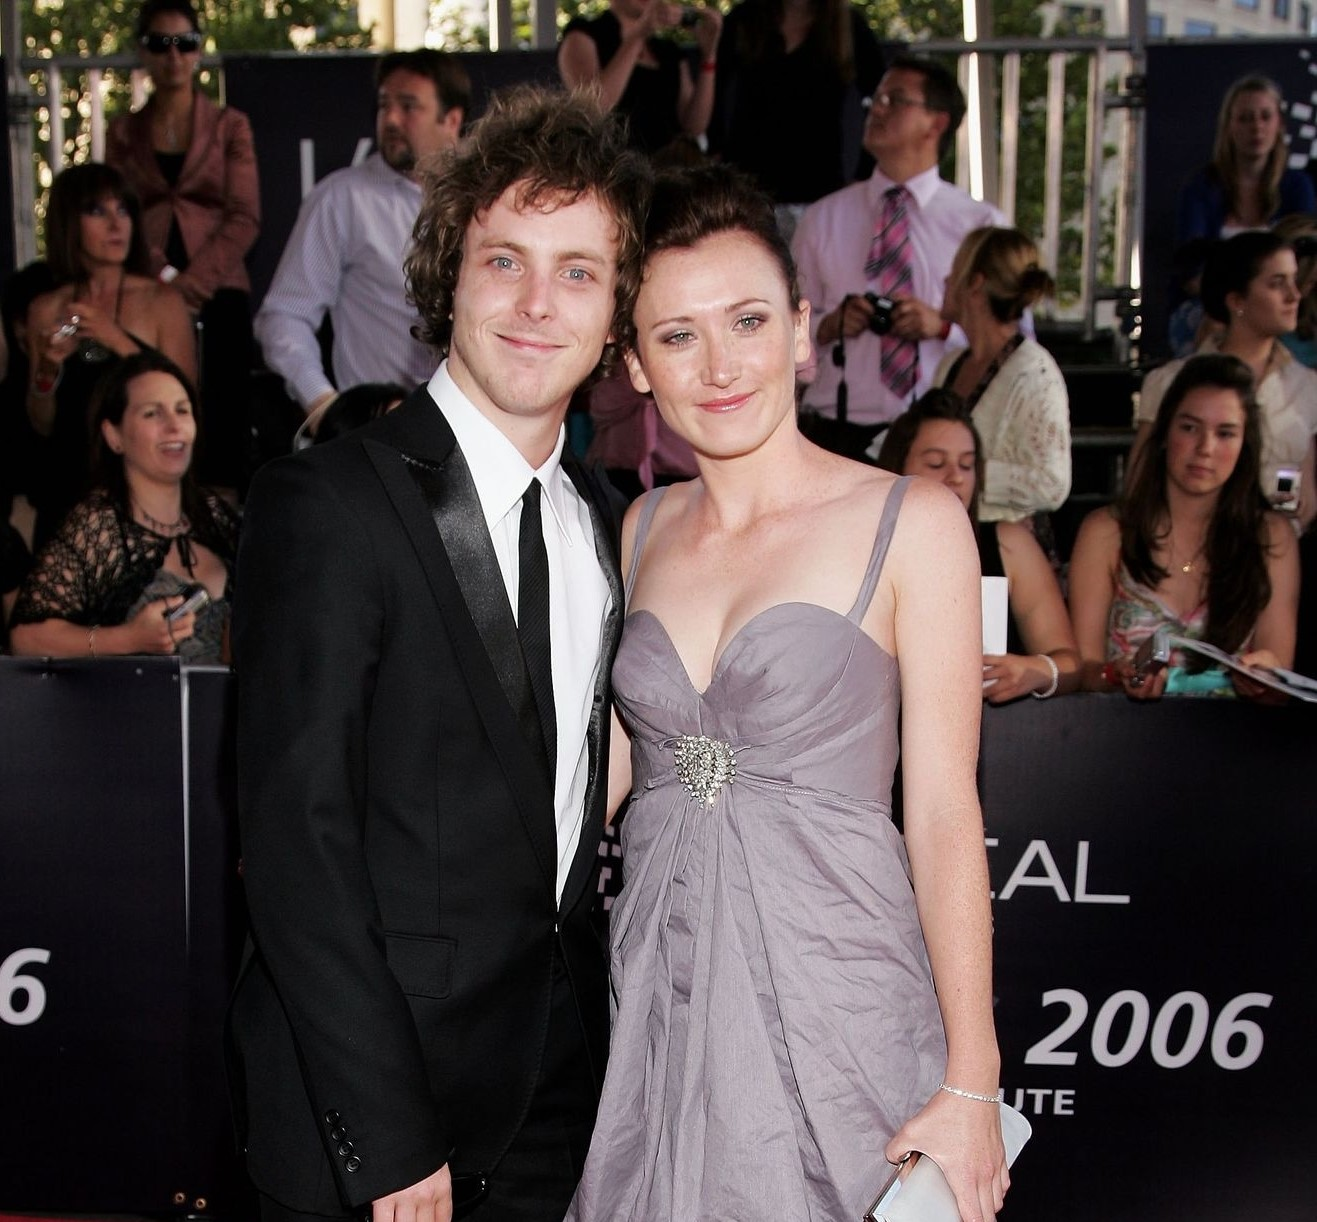 Australian actor, Budge with his girlfriend, Anna Houston at the L'Oreal Paris 2006 AFI Awards.